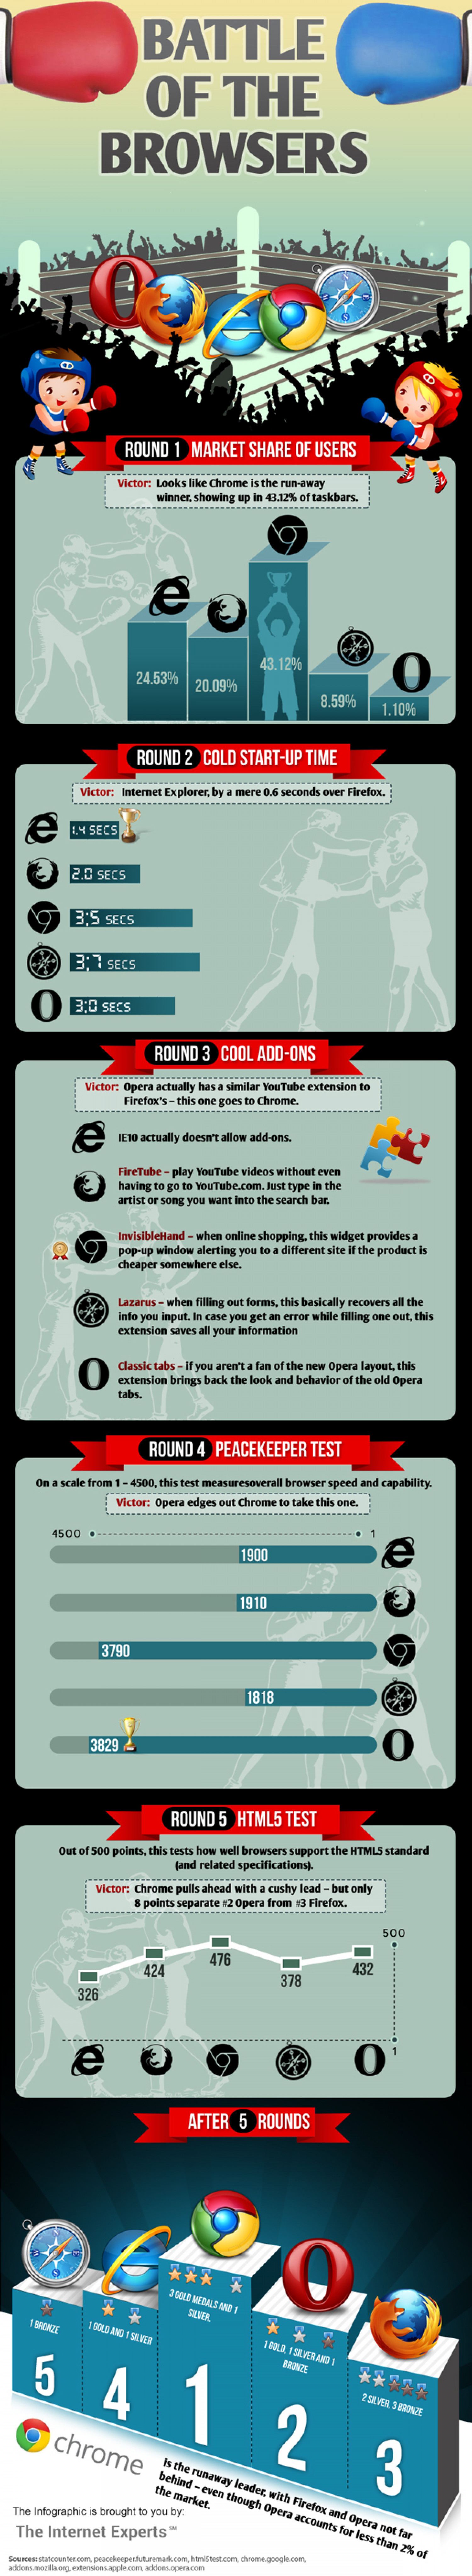 Battle of the Browsers Infographic